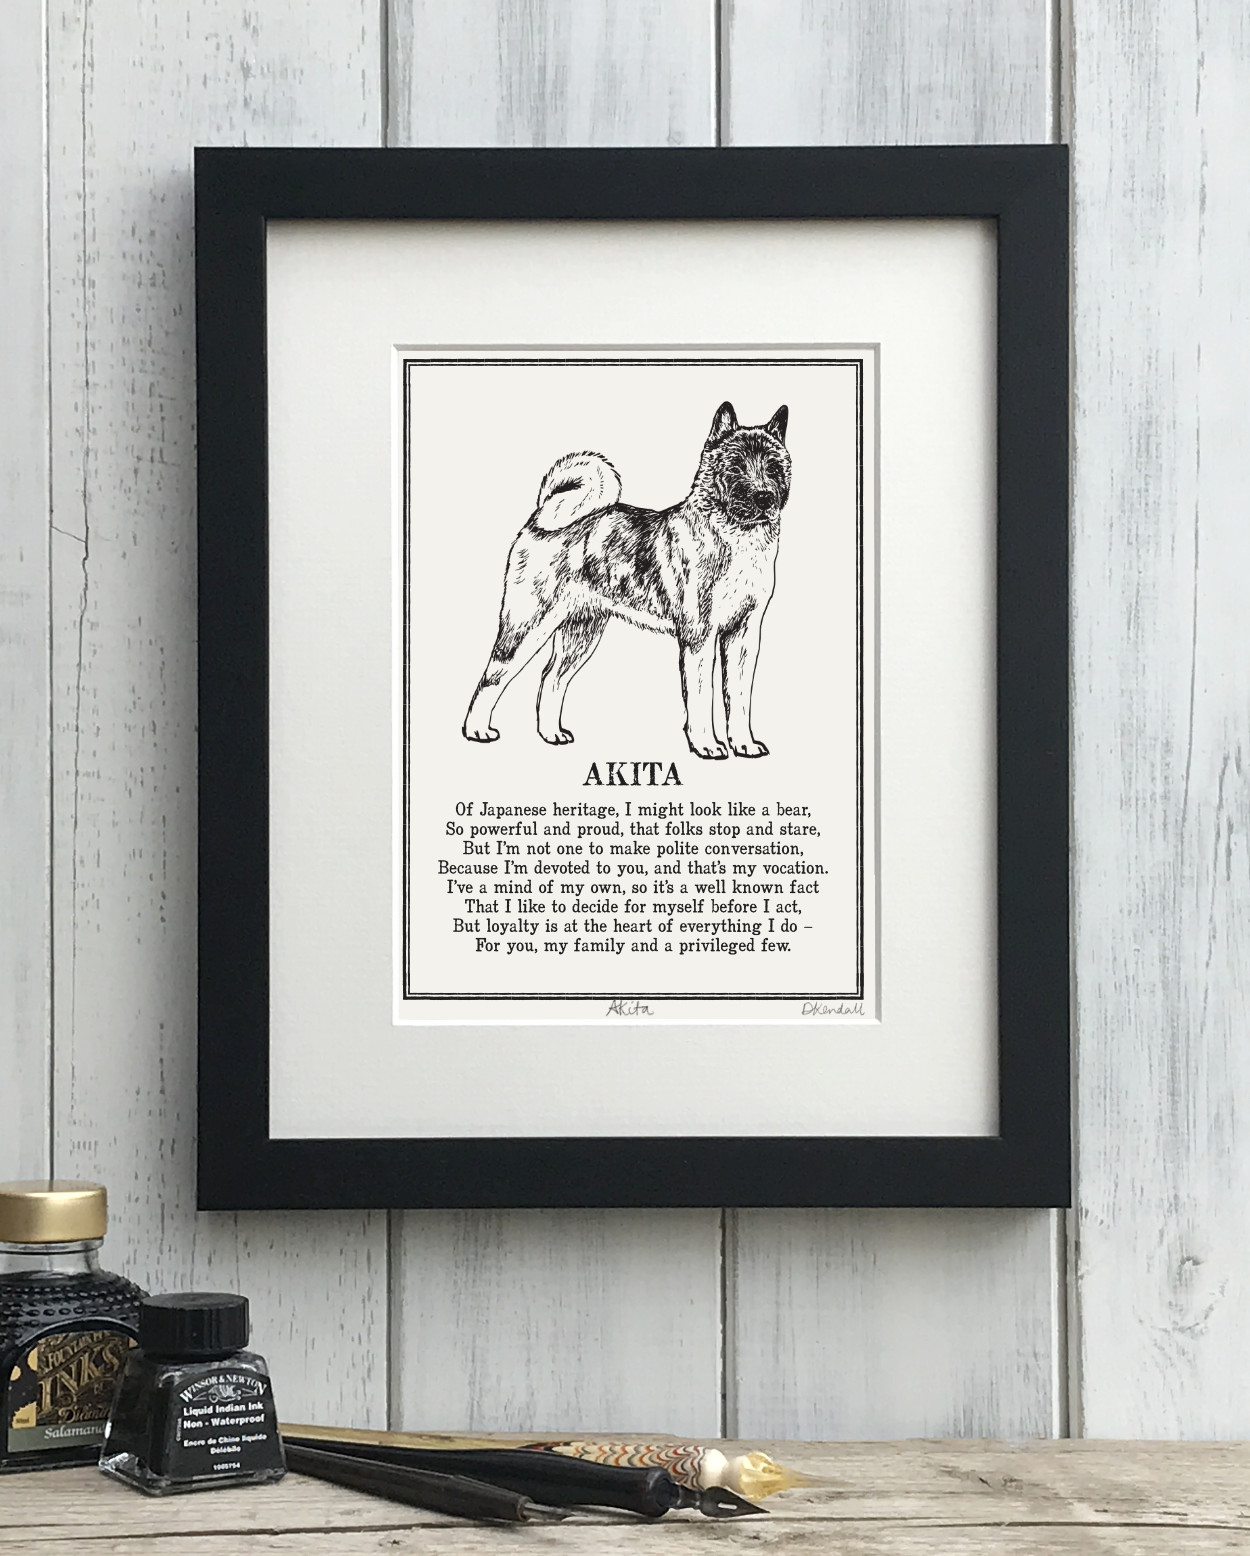 American Akita Doggerel Illustrated Poem Art Print | The Enlightened Hound